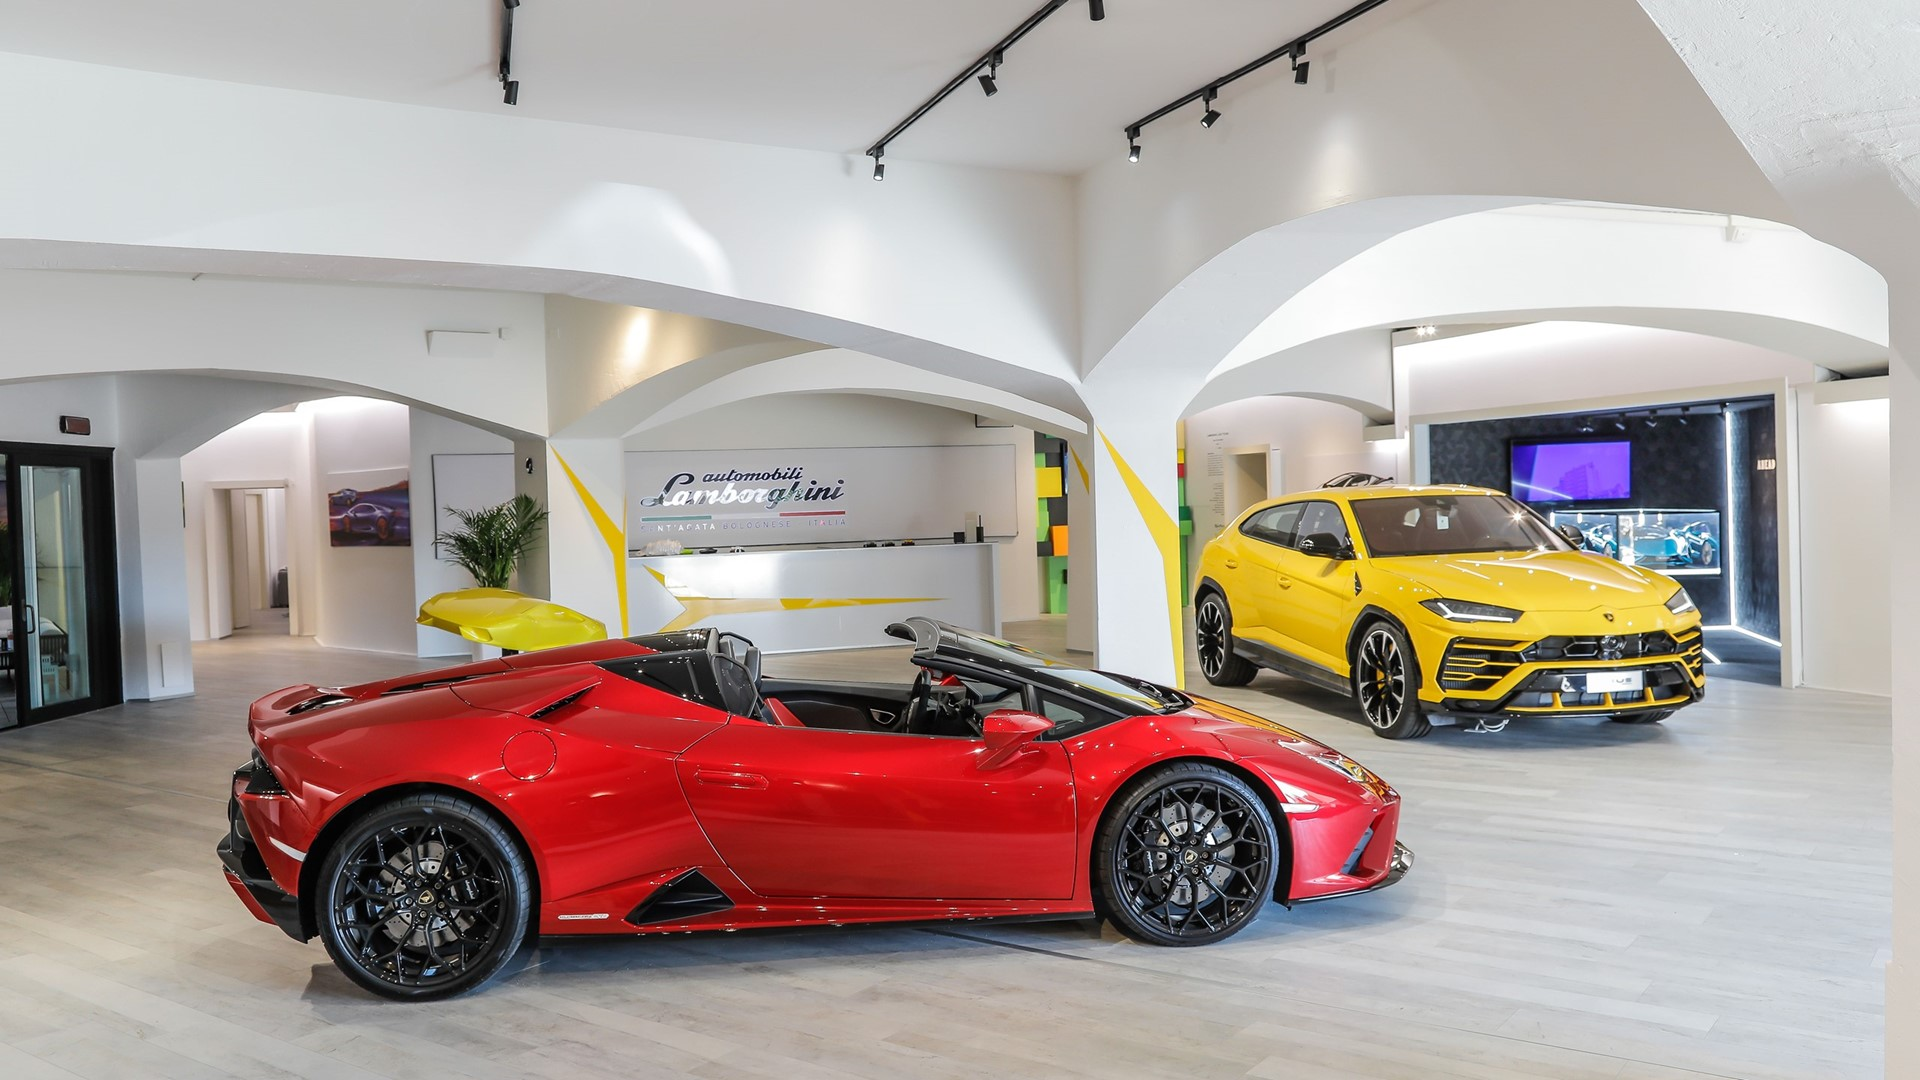 Lamborghini Lounge returns to Porto Cervo: live premier of Huracán EVO RWD Spyder with an exclusive Colours and Stars dinner by Mauro Colagreco. - Image 3